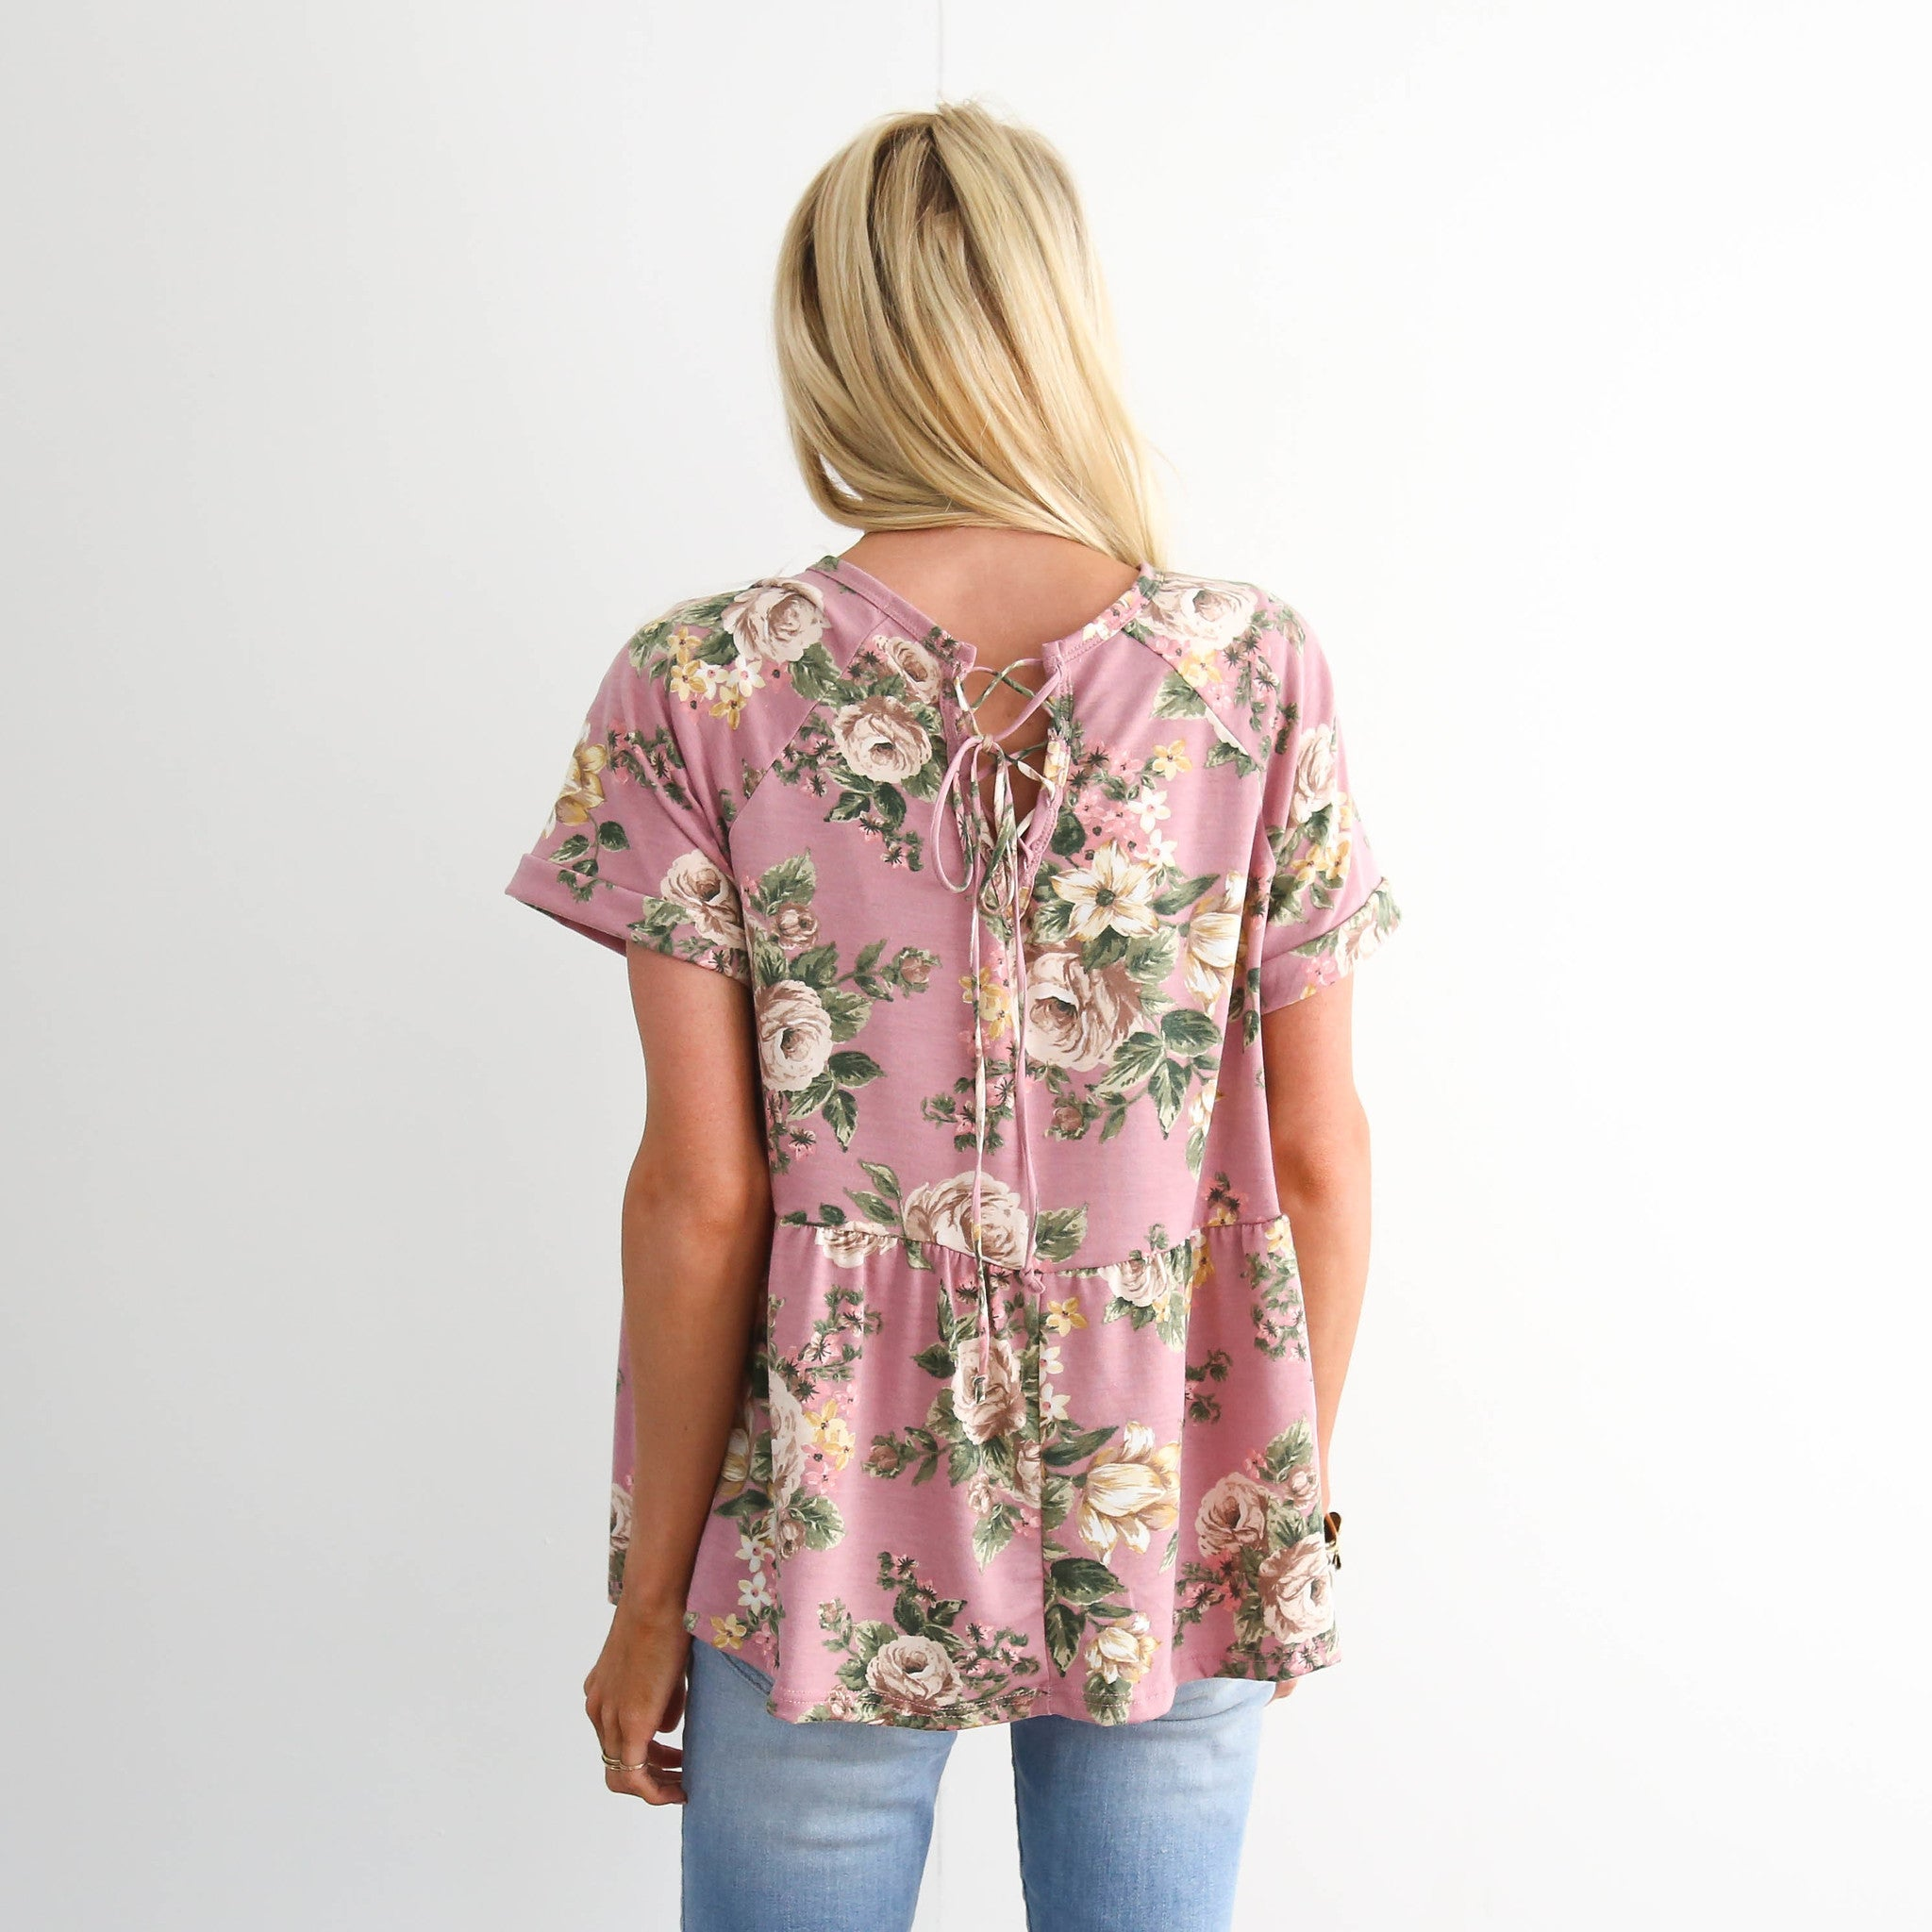 Tillie Flower Top in Mauve